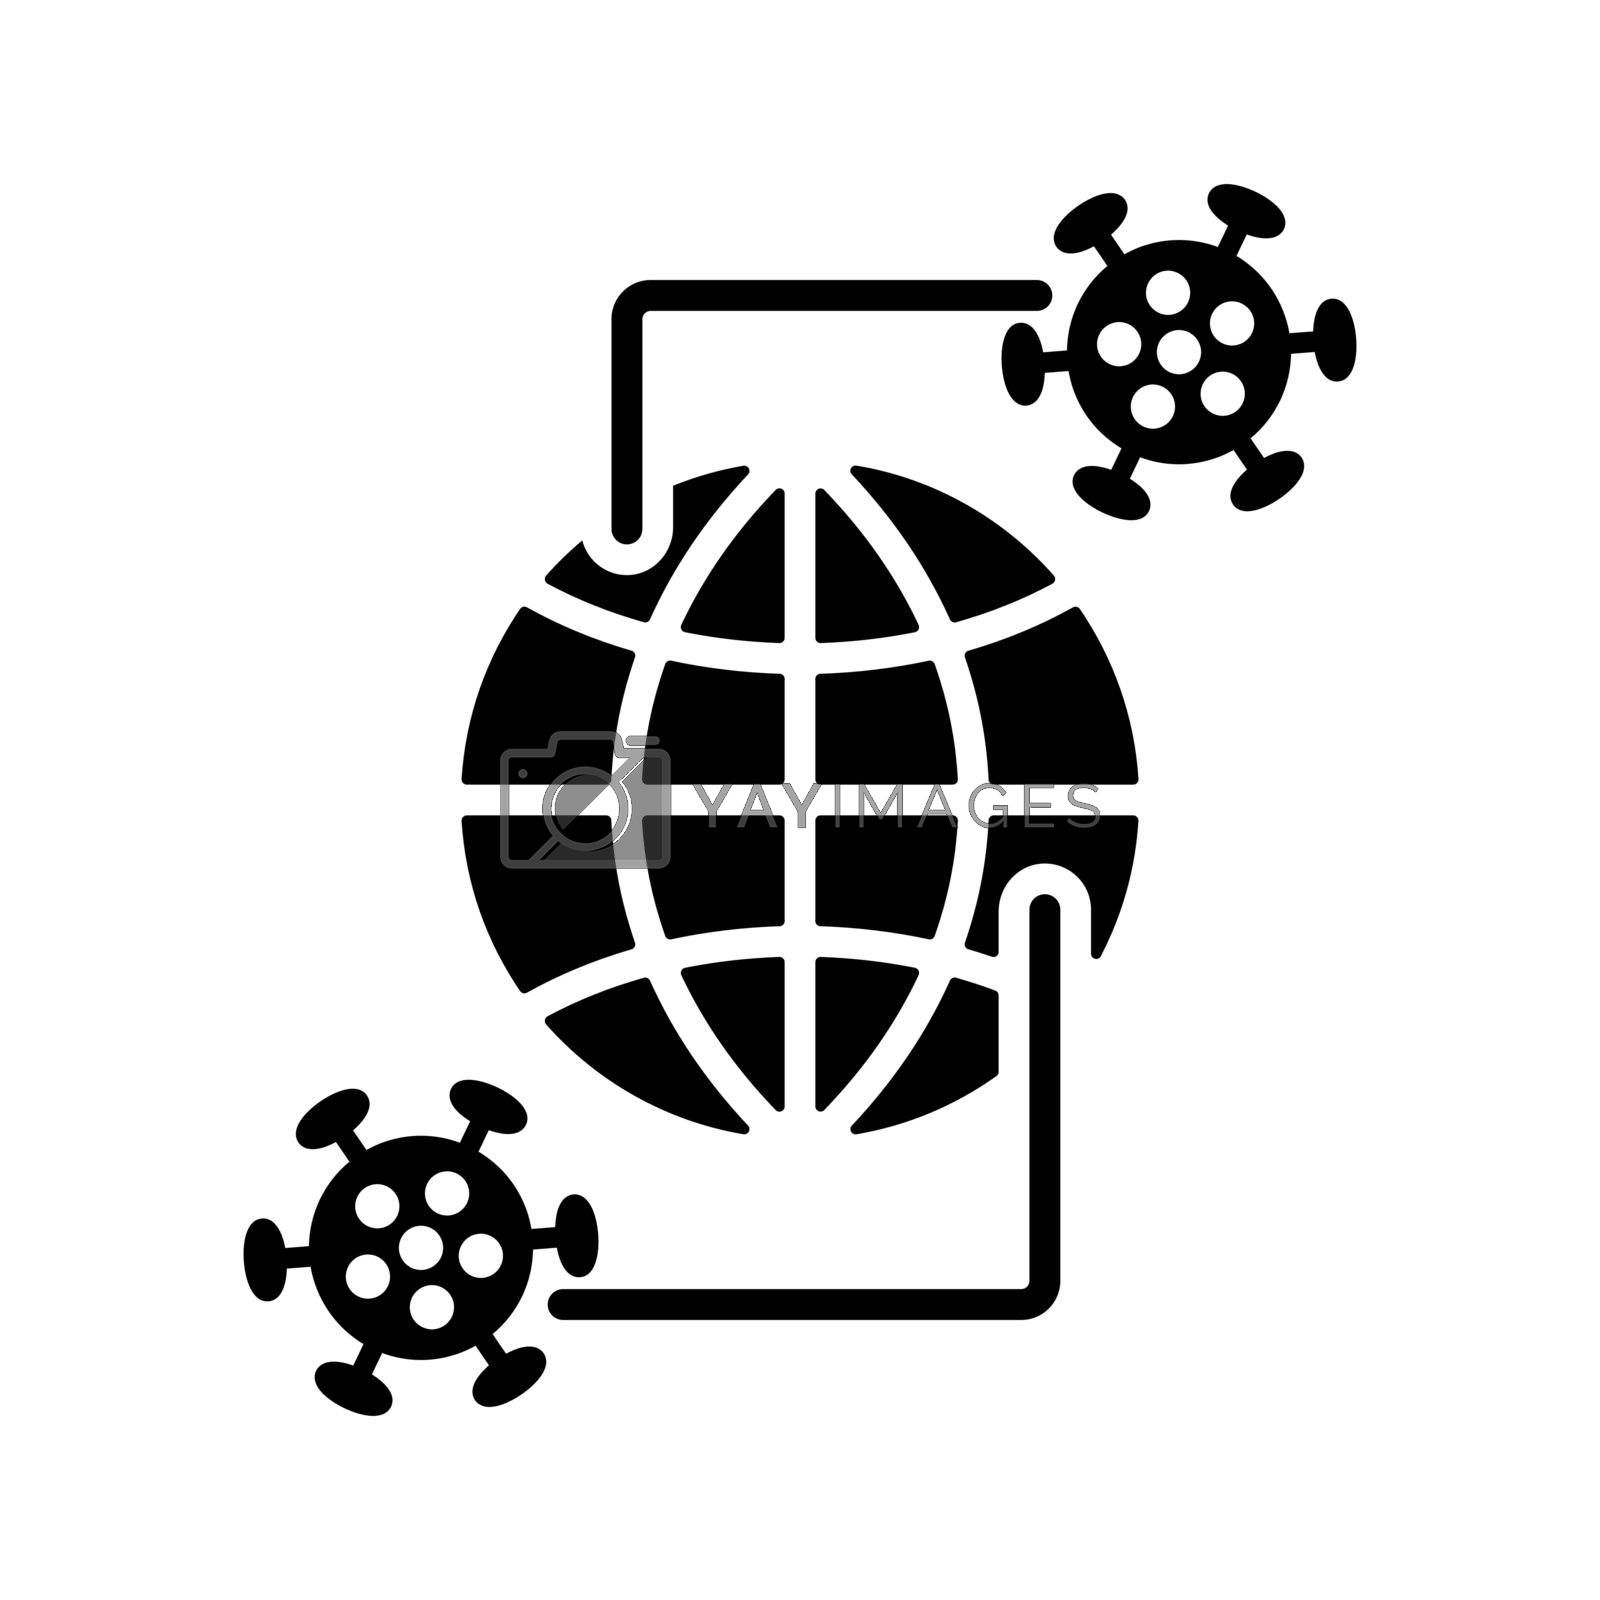 Planet Earth globe with glyph icon of coronavirus 2019-nCov. The spread of a virus outbreak in the world. COVID 19 outbreak and world pandemic risk concept.